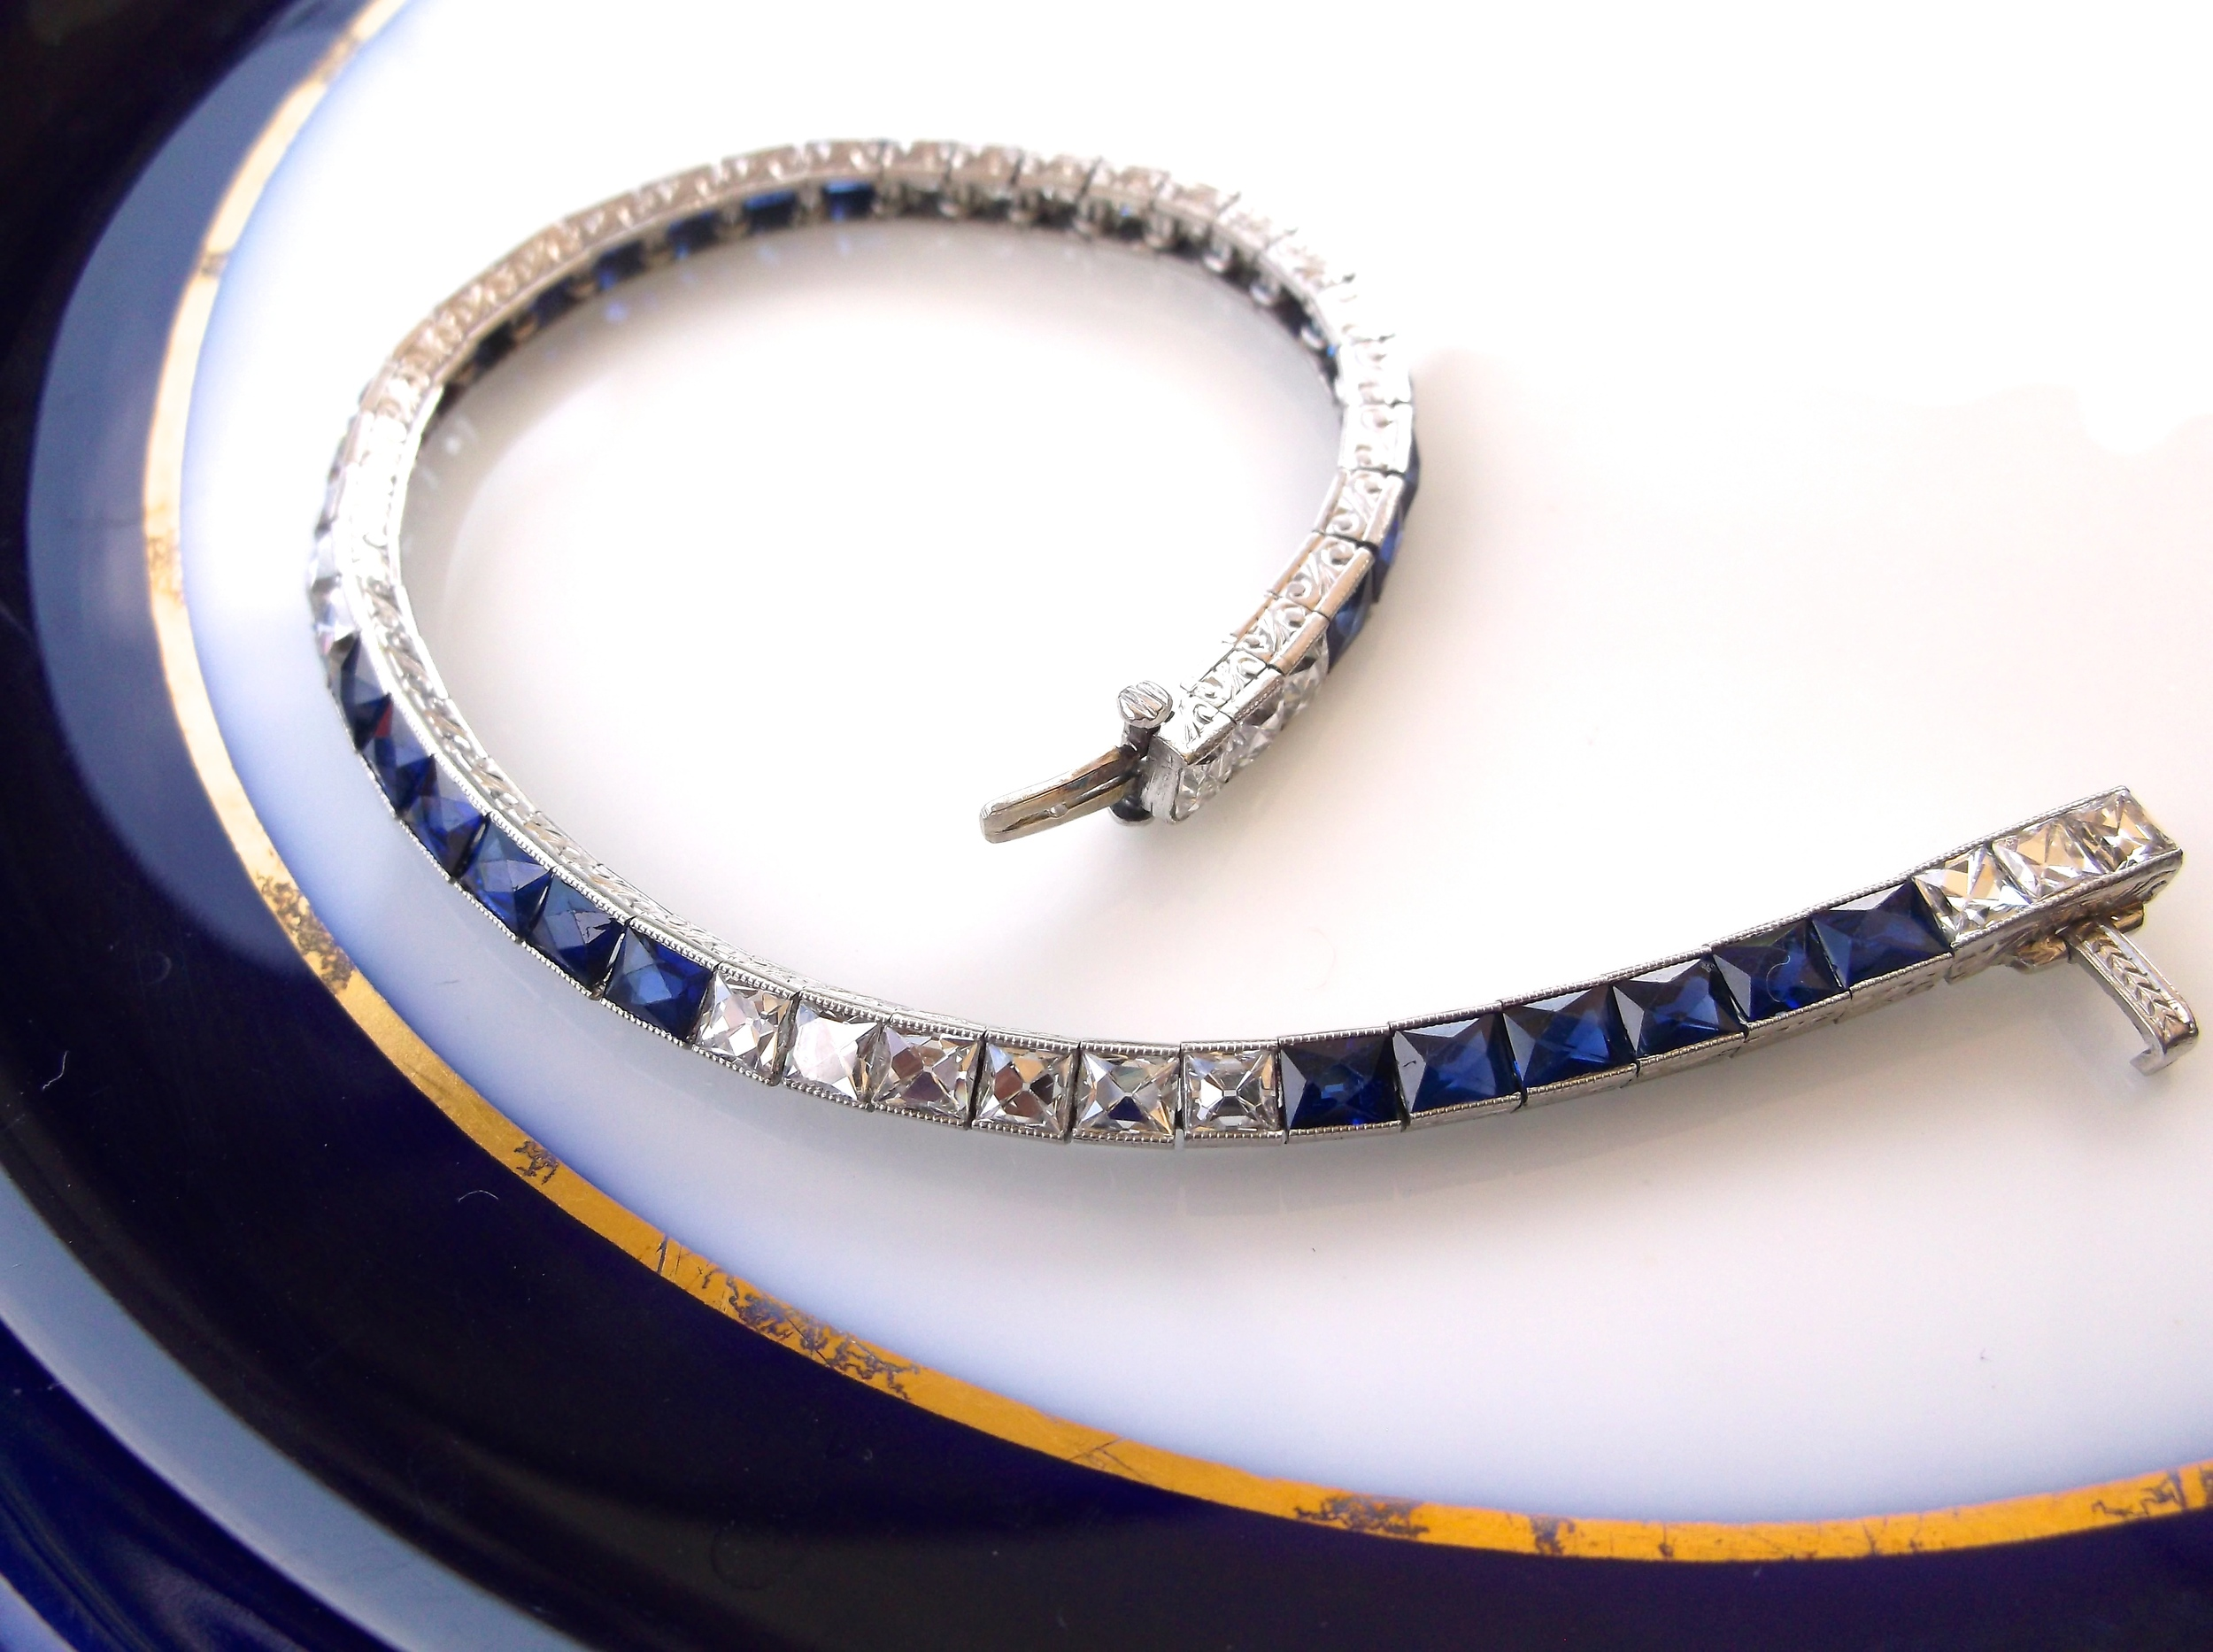 SOLD - Stunning 1920's swiss cut diamond and synthetic sapphire bracelet set in platinum with 3.60 carats total weight in diamonds.